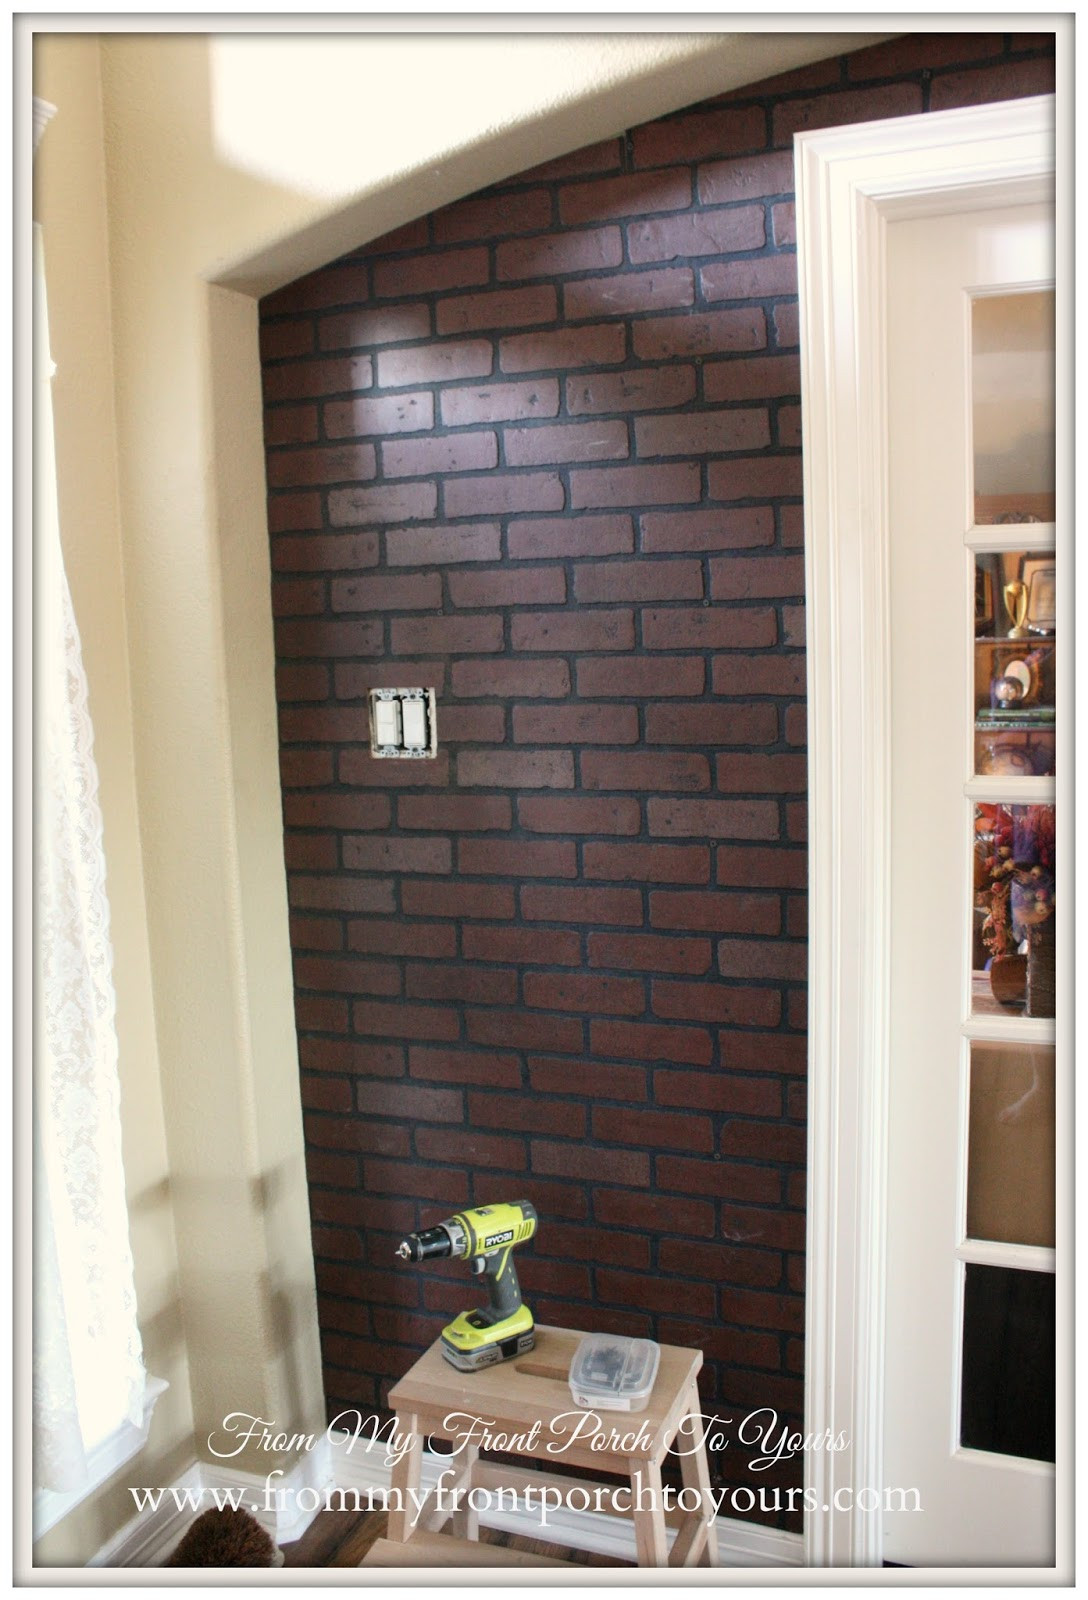 Best ideas about DIY Faux Brick Wall . Save or Pin From My Front Porch To Yours DIY Faux Brick Wall Part 1 Now.